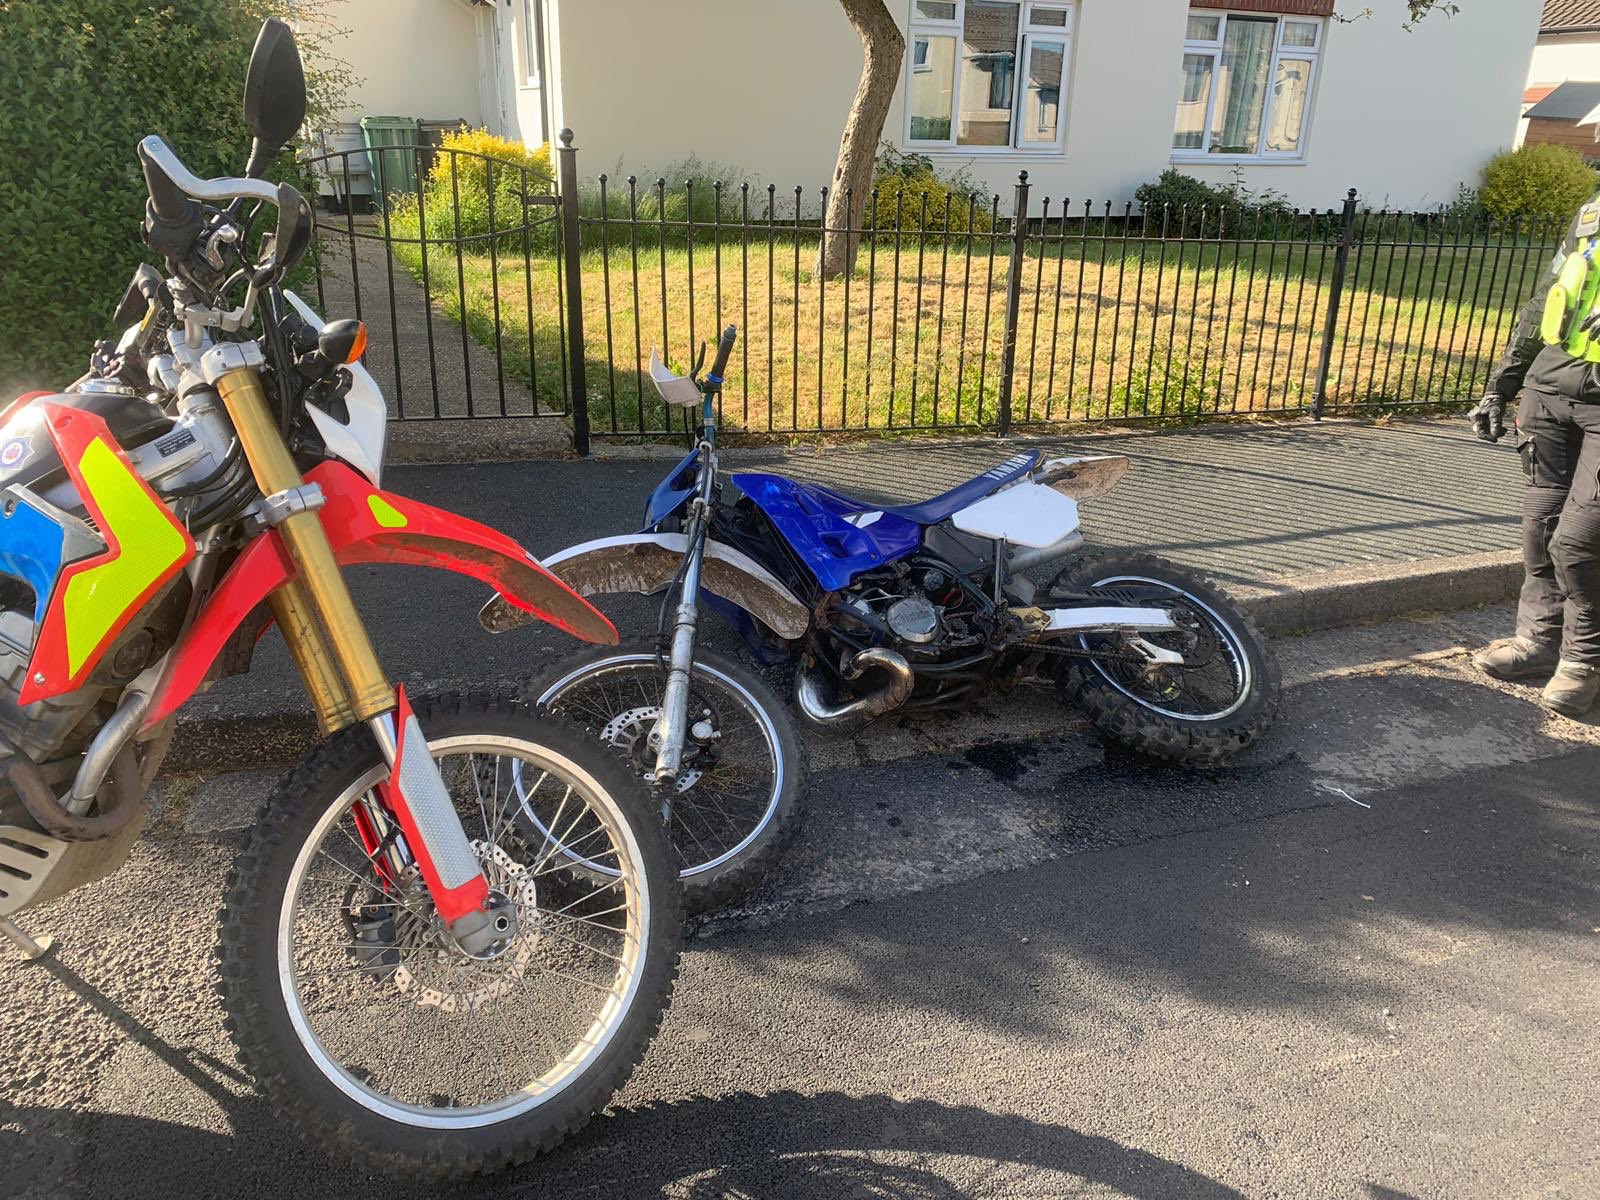 West Yorkshire Police and Kirklees Council Working to Put the Brakes on 'Nuisance Motorbikes'